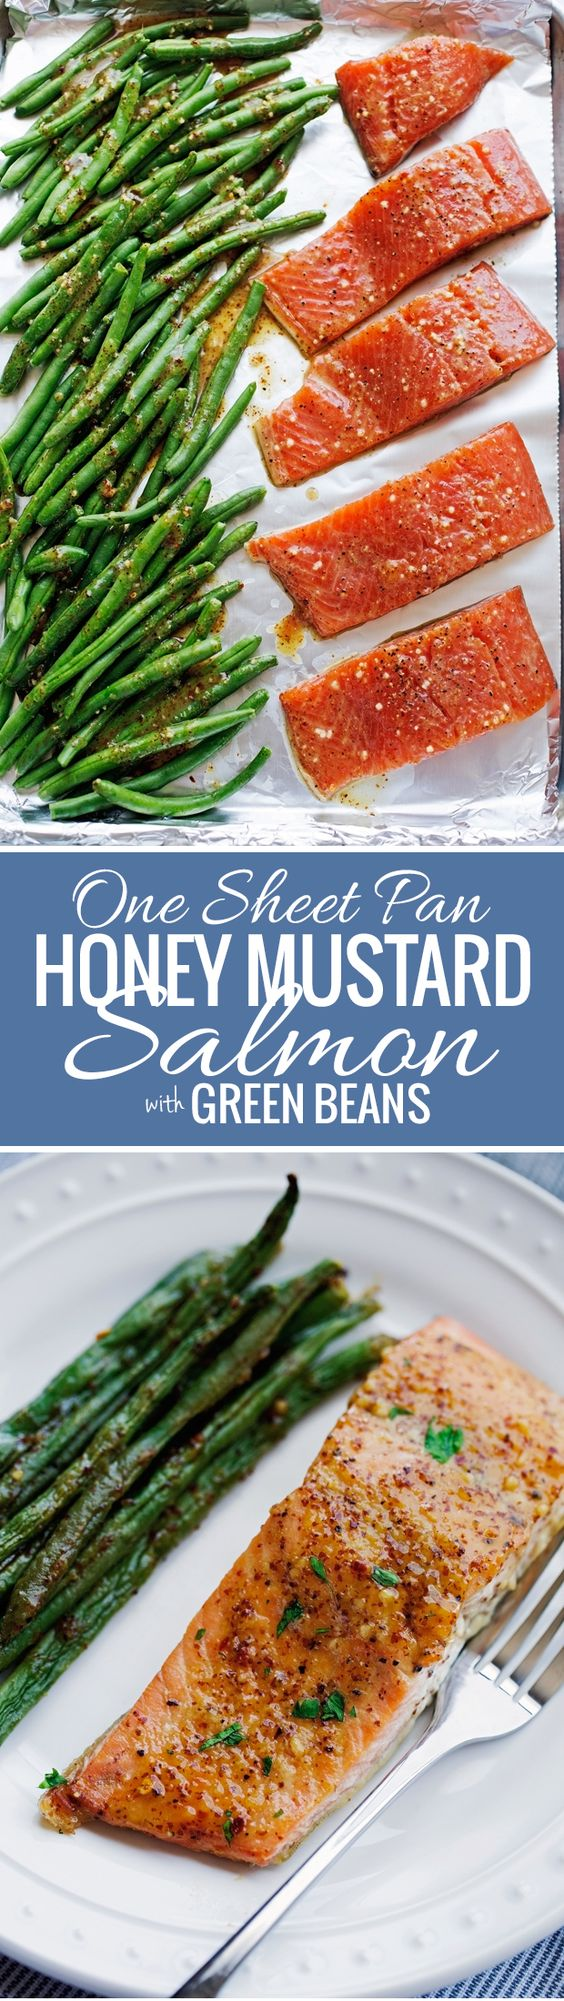 One Sheet Pan Honey Mustard Salmon with Green Beans Recipe via Little Spice Jar - An easy weeknight dinner that's all baked in one pan! #sheetpansuppers #sheetpanrecipes #sheetpandinners #onepanmeals #healthyrecipes #mealprep #easyrecipes #healthydinners #healthysuppers #healthylunches #simplefamilymeals #simplefamilyrecipes #simplerecipes